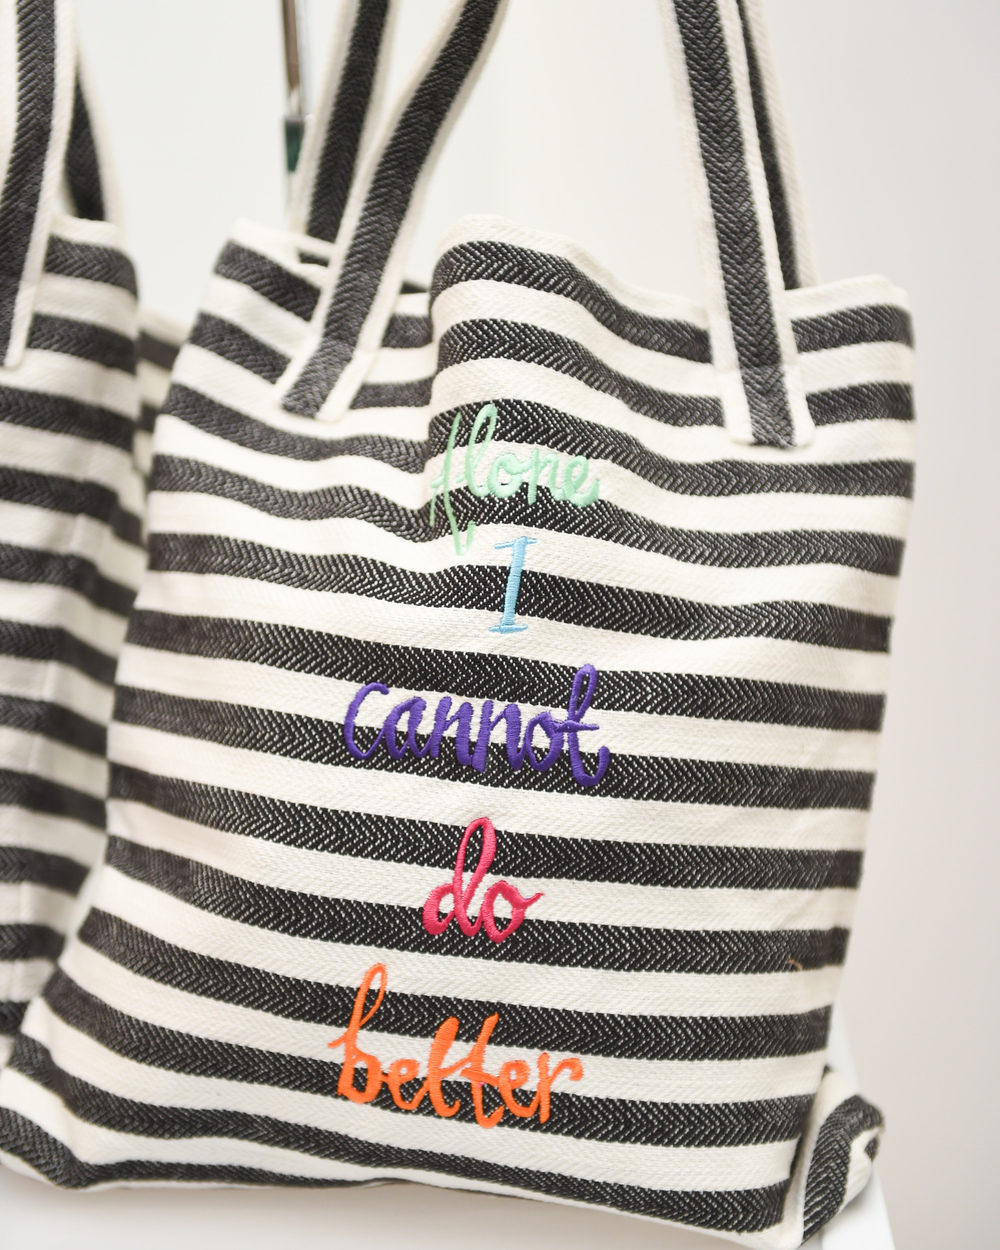 BB|AM, Zoë Buckman, and Mara Hoffman collaborate on a limited edition tote bag. Available for purchase  here . All proceeds go to goods for good;Photo credit: BFA.com